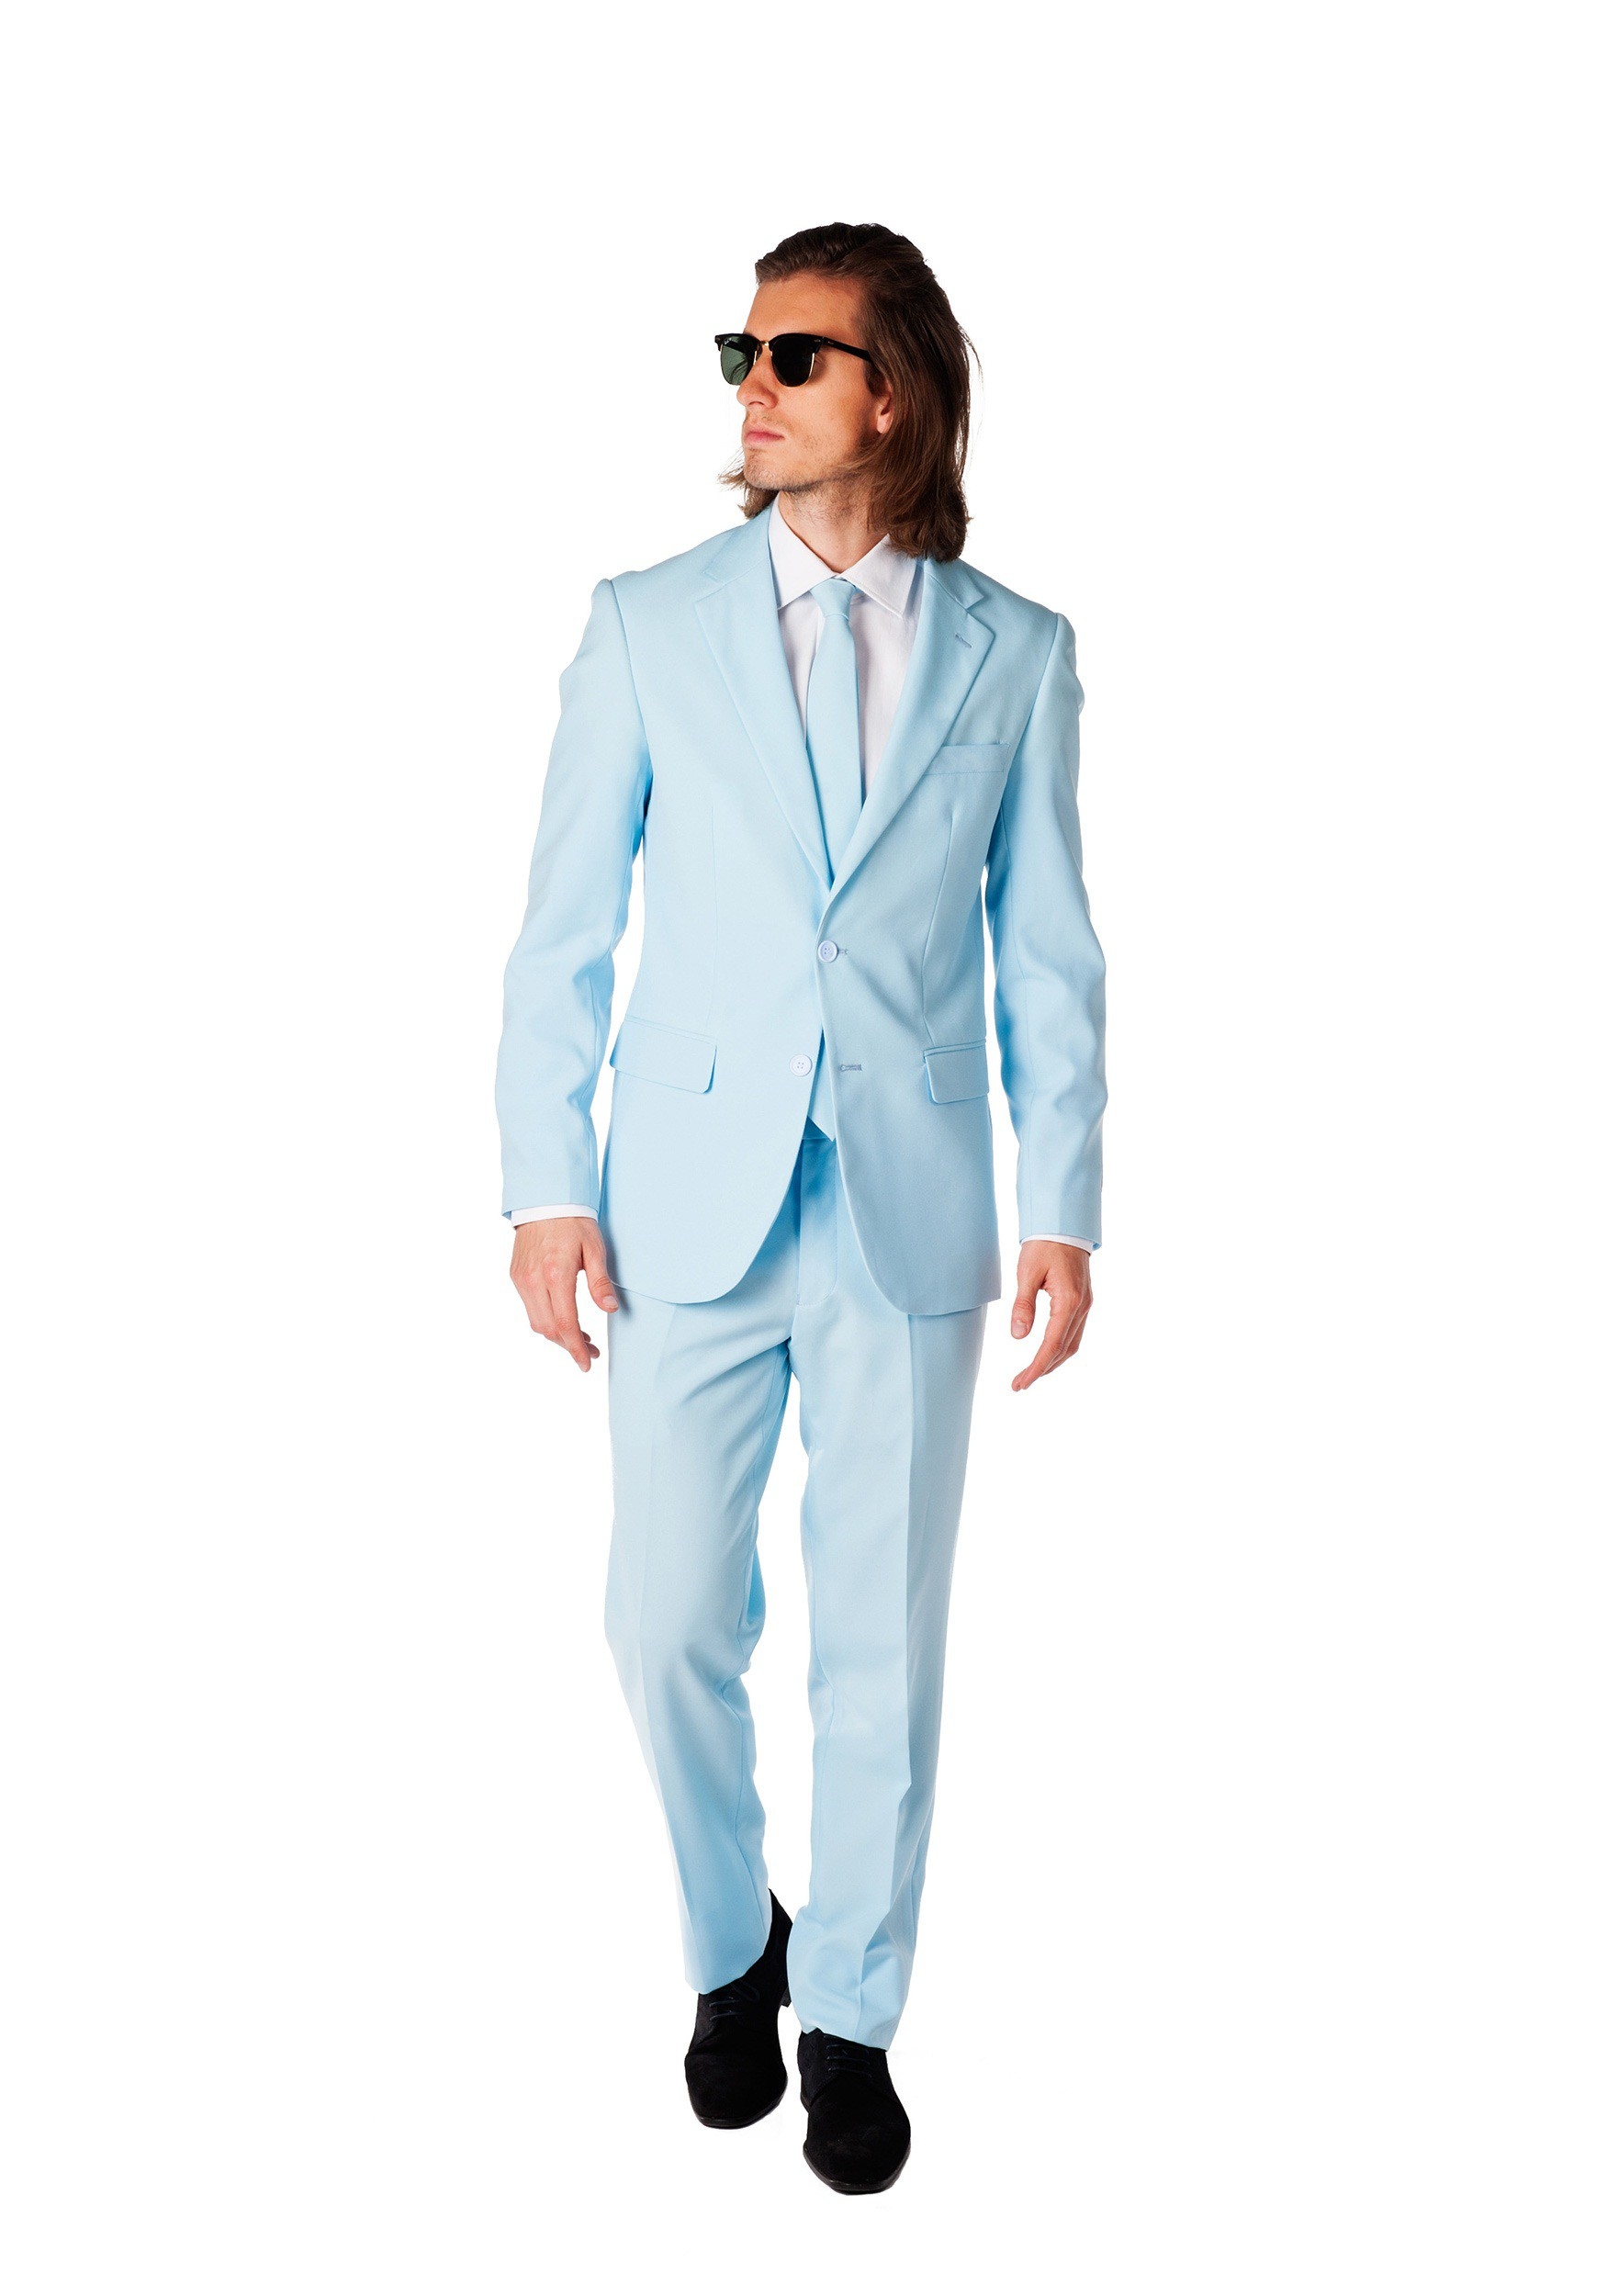 Pretty Cool Prom Suits Pictures Inspiration - Wedding Ideas ...